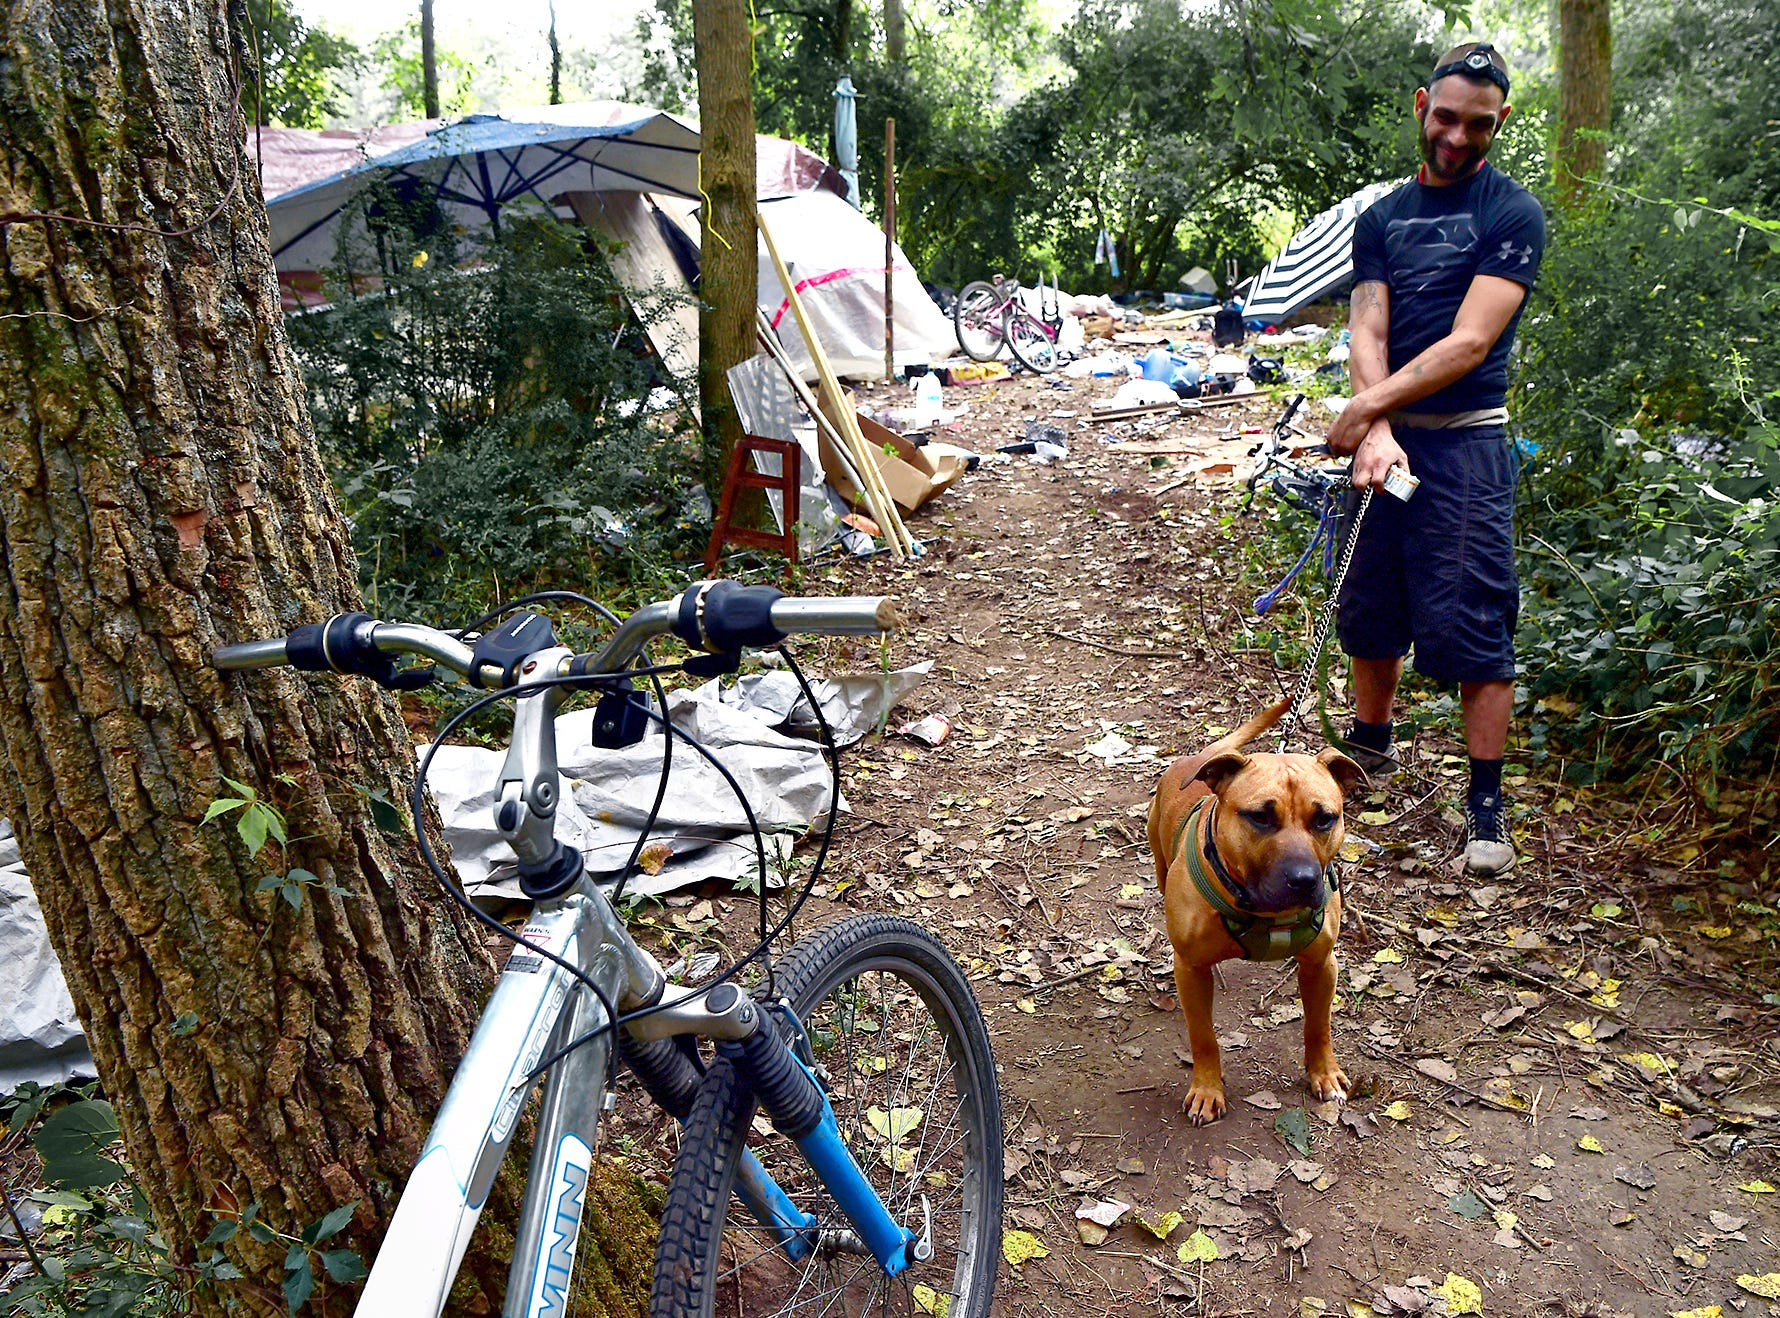 A resident of The Jungle in Ithaca with his dog Scooby. Located behind the shopping centers along Rt. 13, The Jungle is home to dozens of homeless people who live in tents and makeshift shacks.